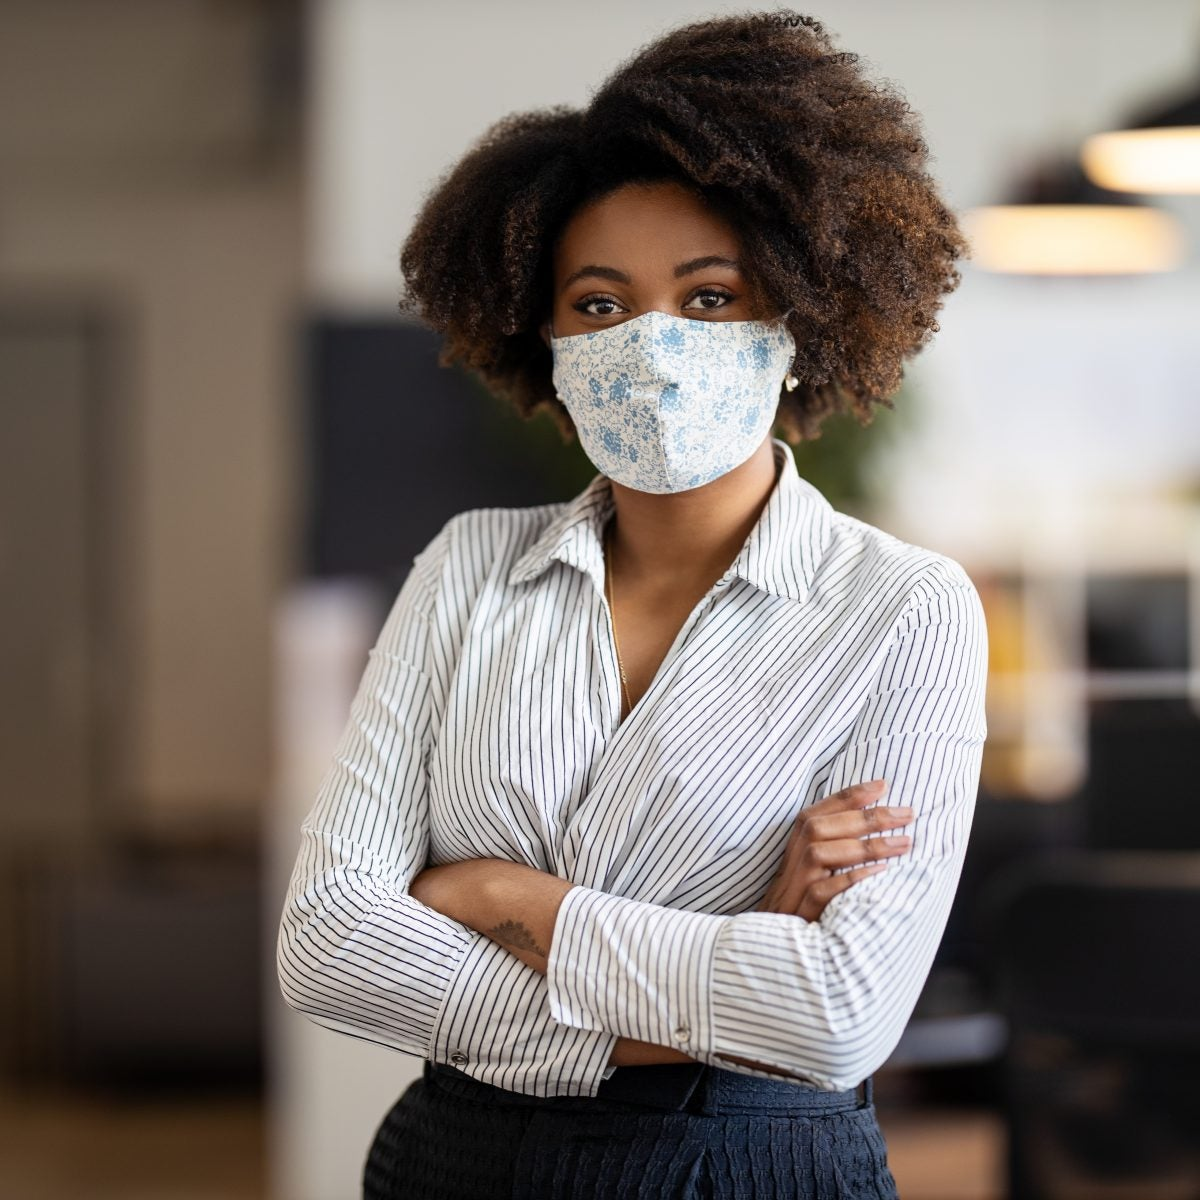 Why I Started a Business During Quarantine